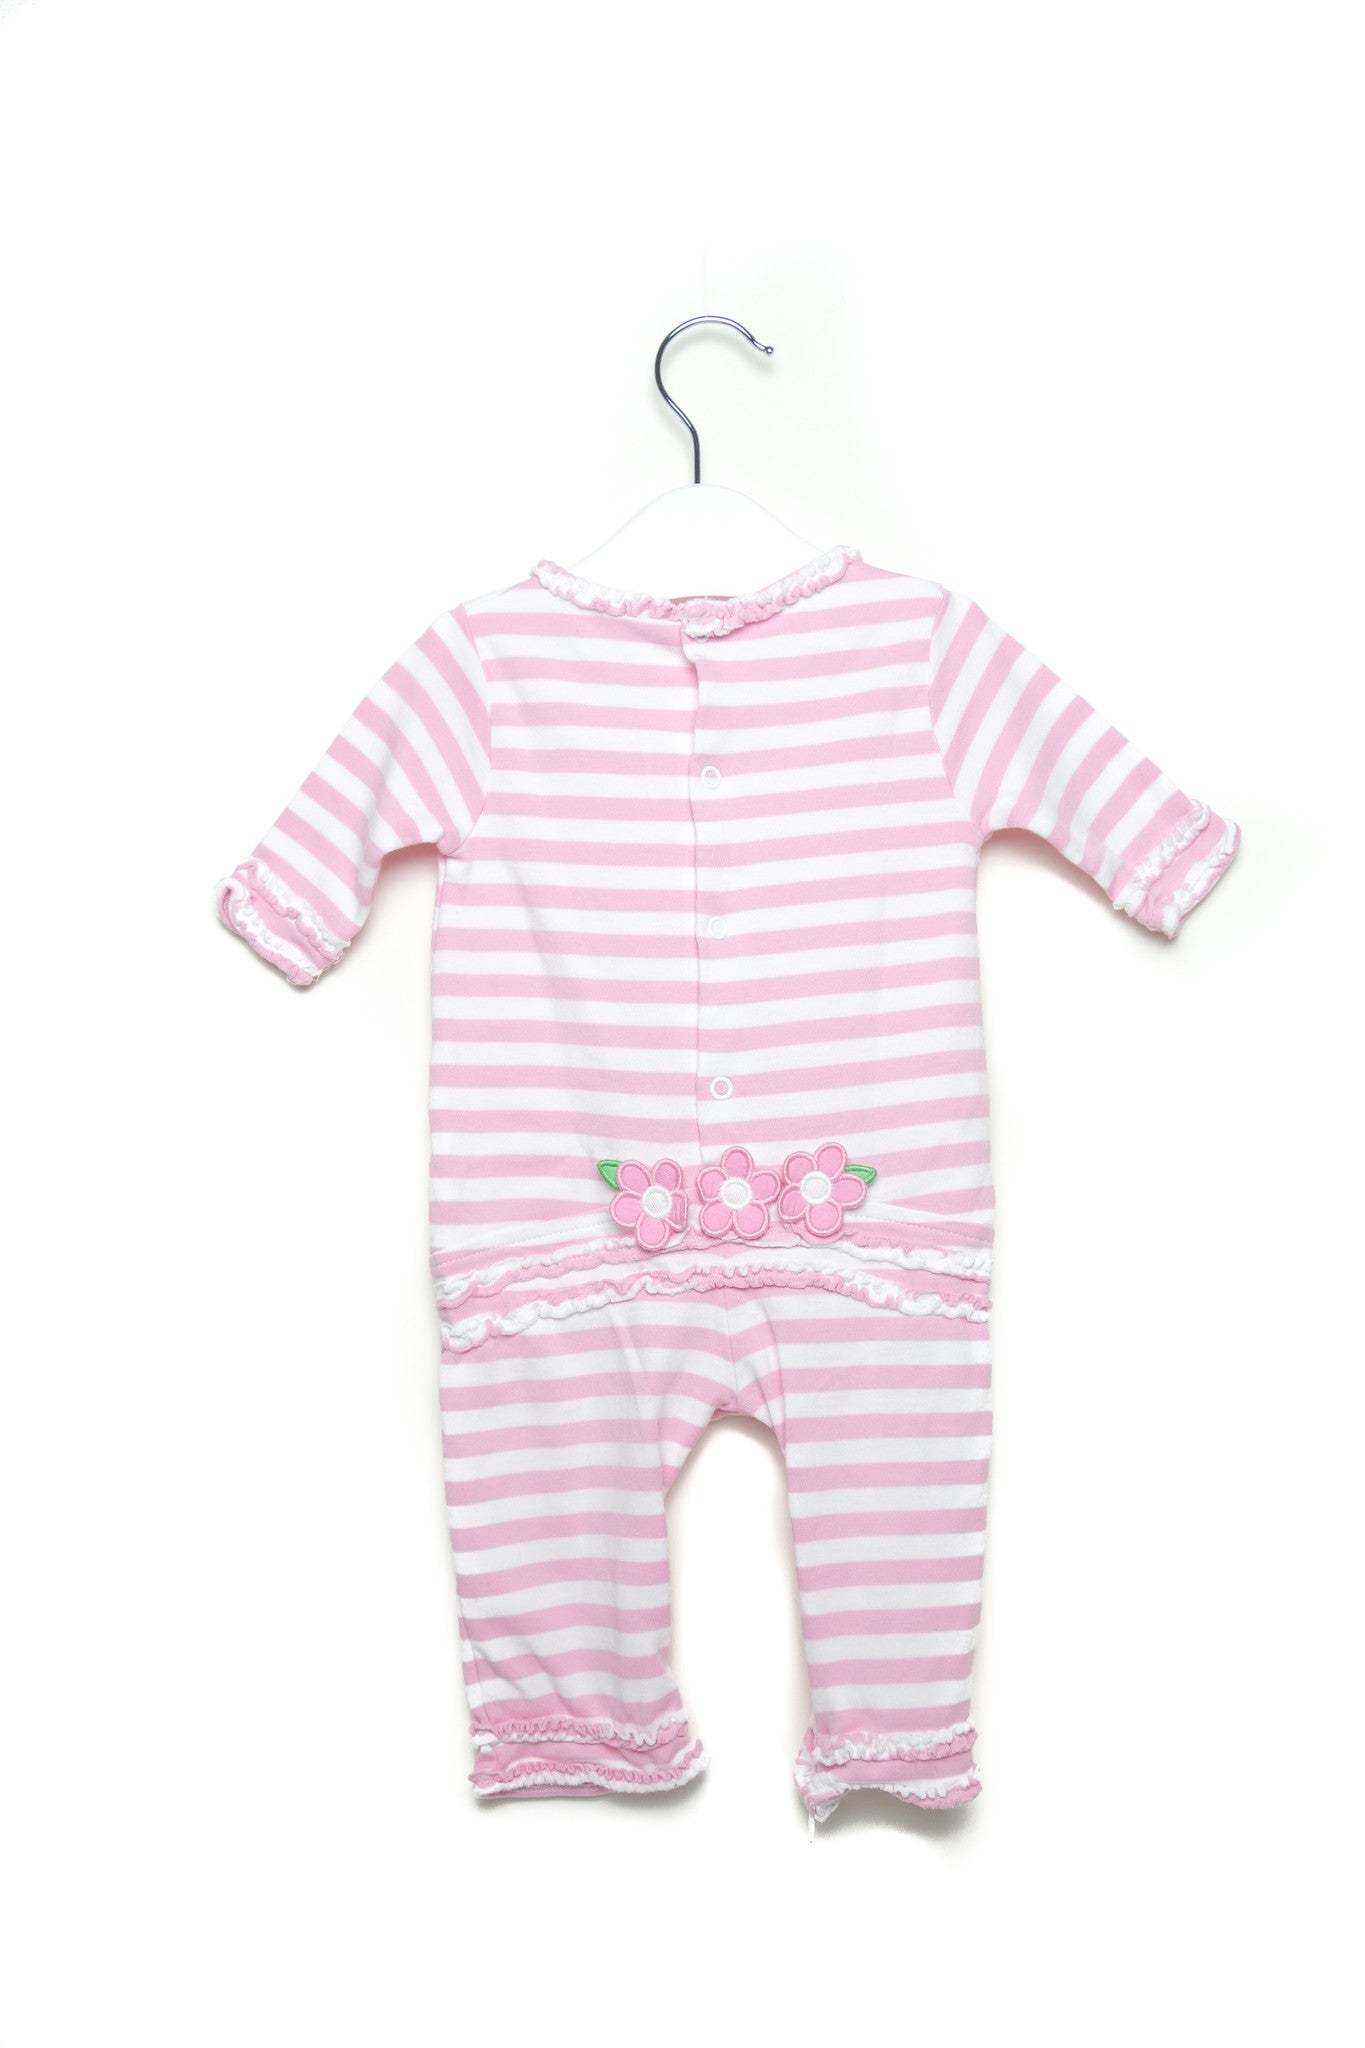 10001416 Florence Eiseman Baby~Jumpsuit 3M at Retykle